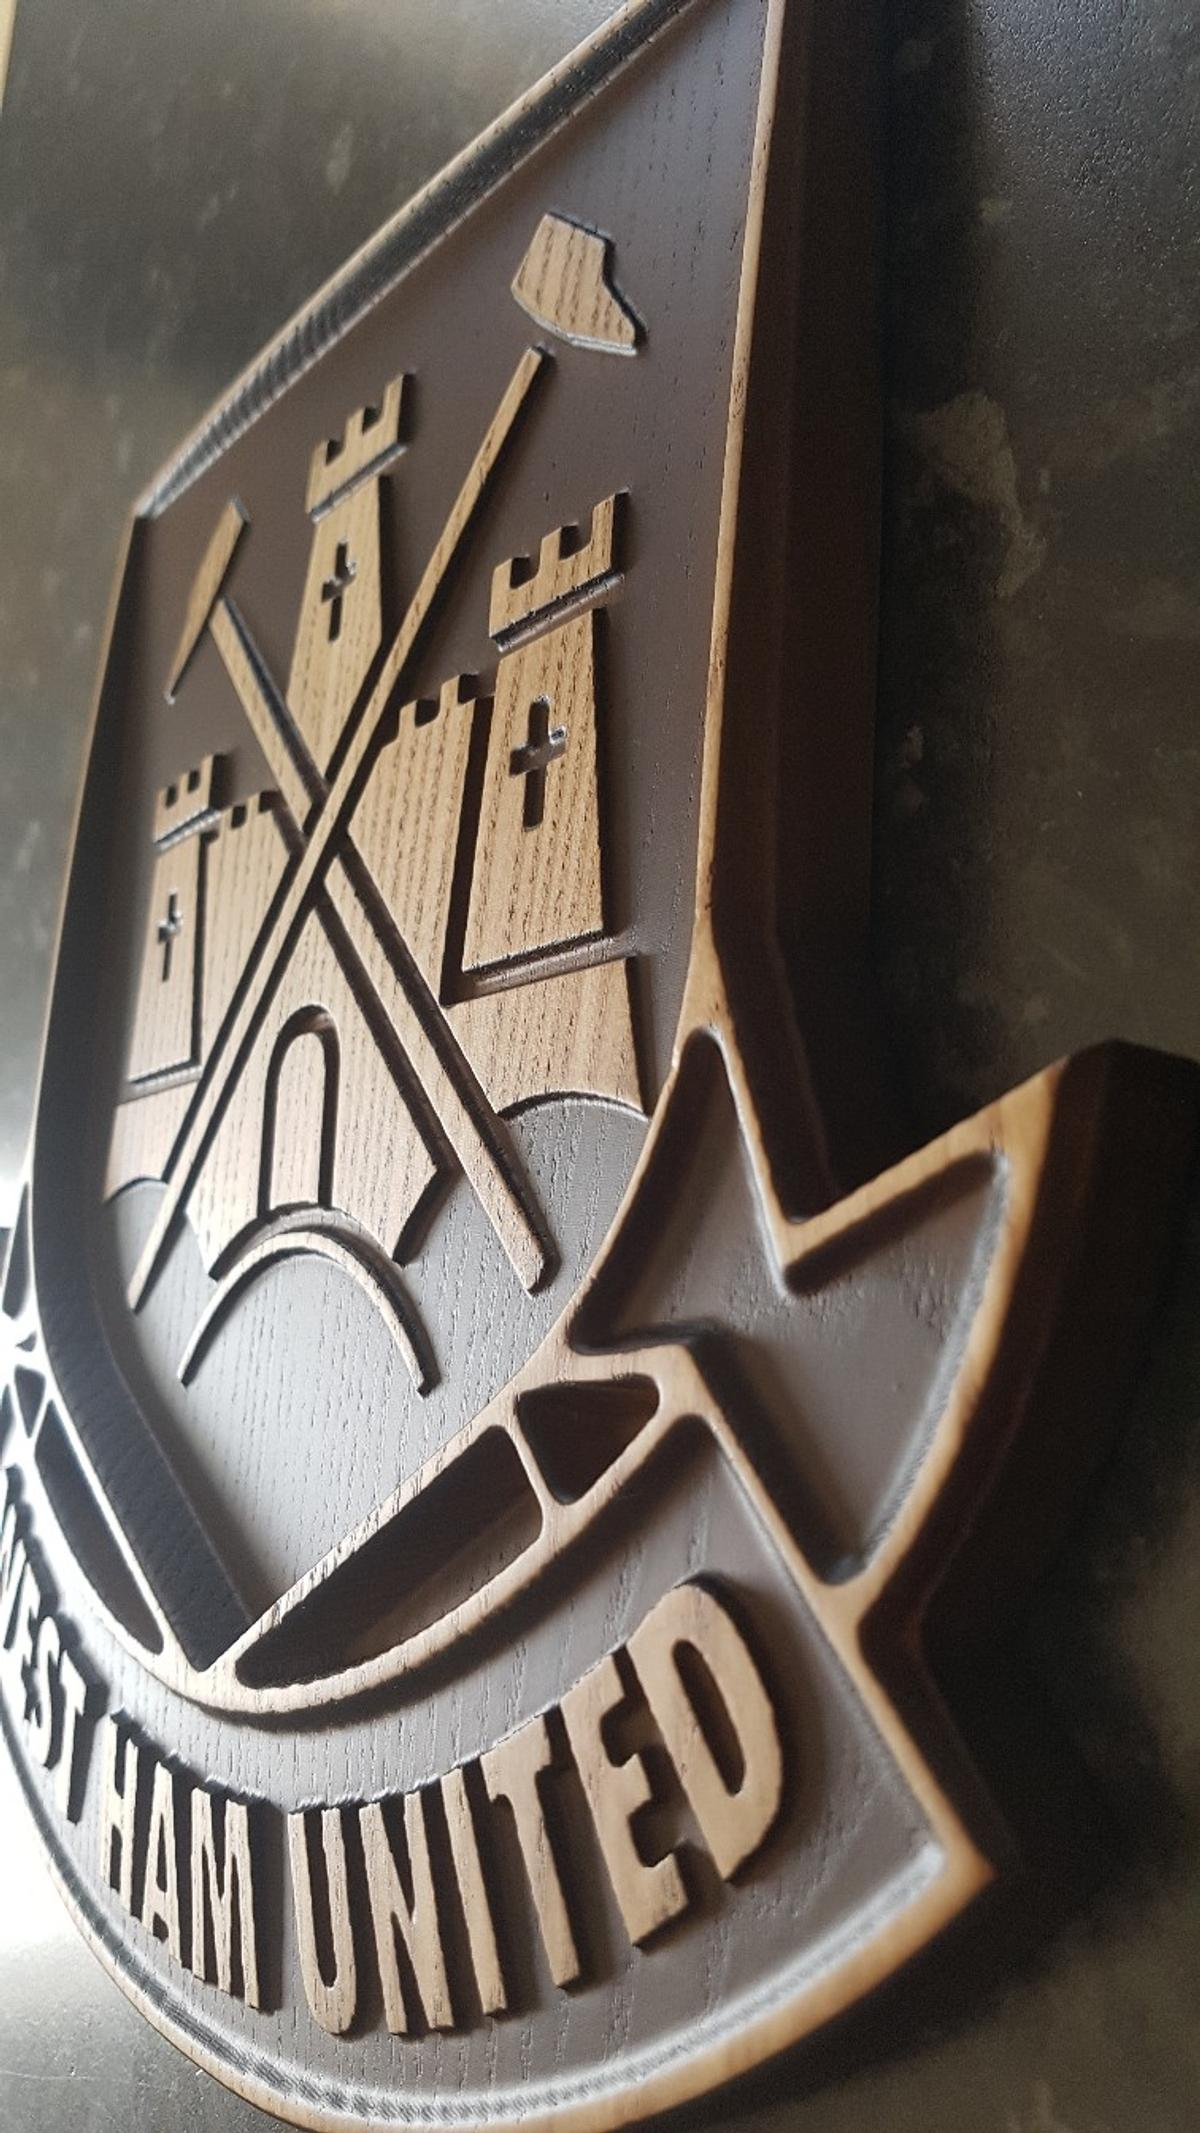 WEST HAM UNITED FC Wood Carving Crest Logo in E14 London für